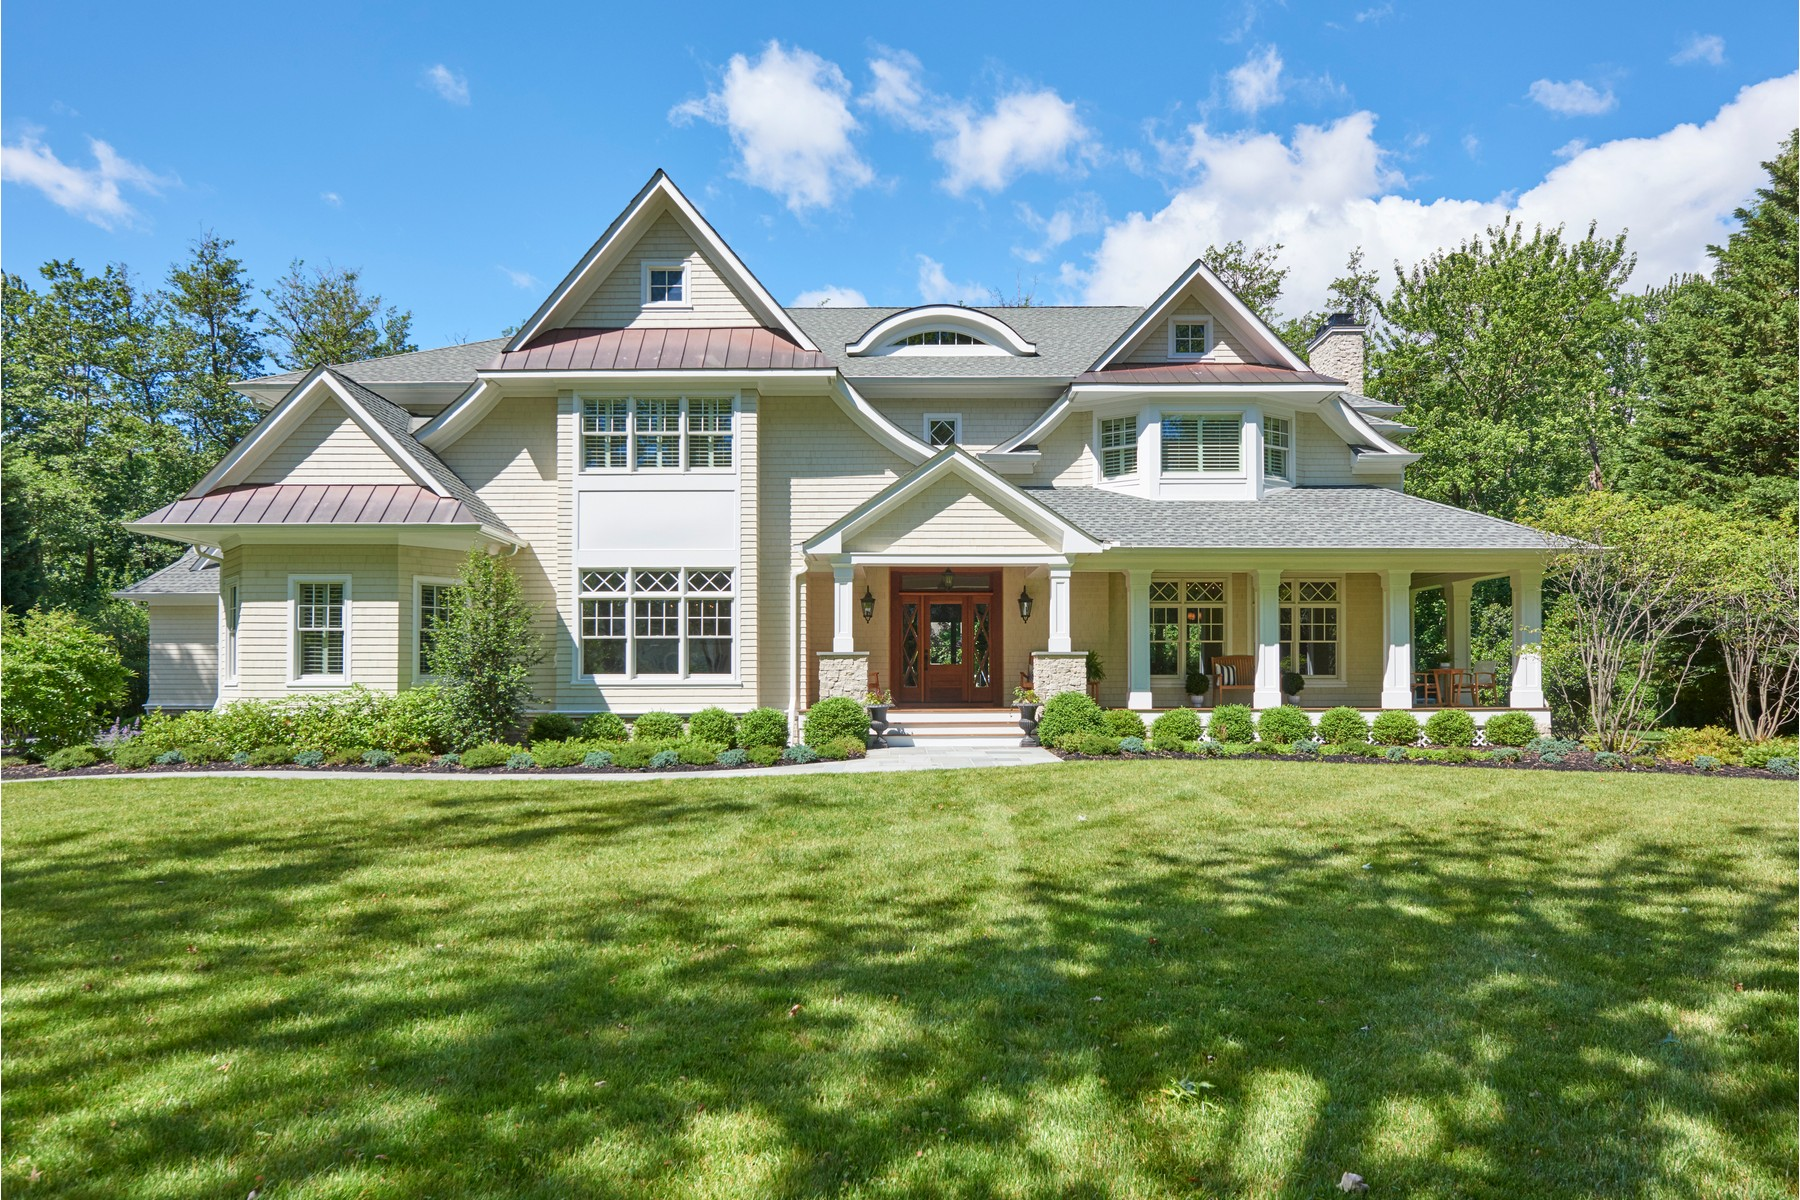 Single Family Homes for Sale at SHEER PERFECTION 8 Heathcliff Road Rumson, New Jersey 07760 United States